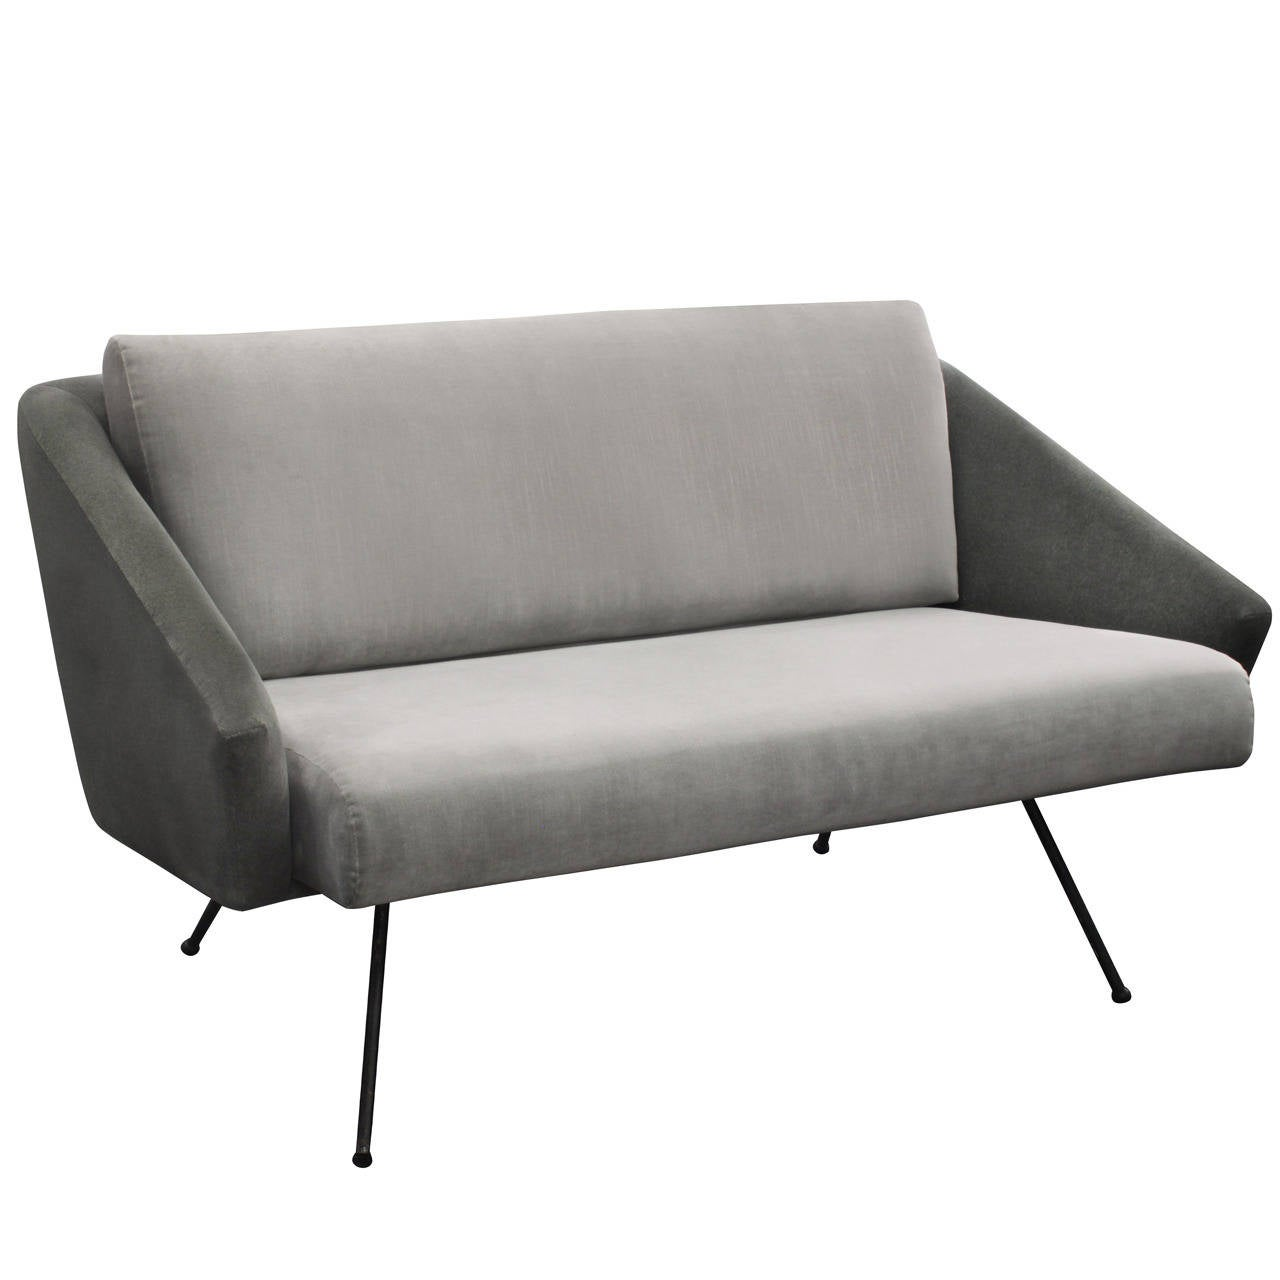 sofa with legs or without big squishy leather sofas small sculptural splayed at 1stdibs